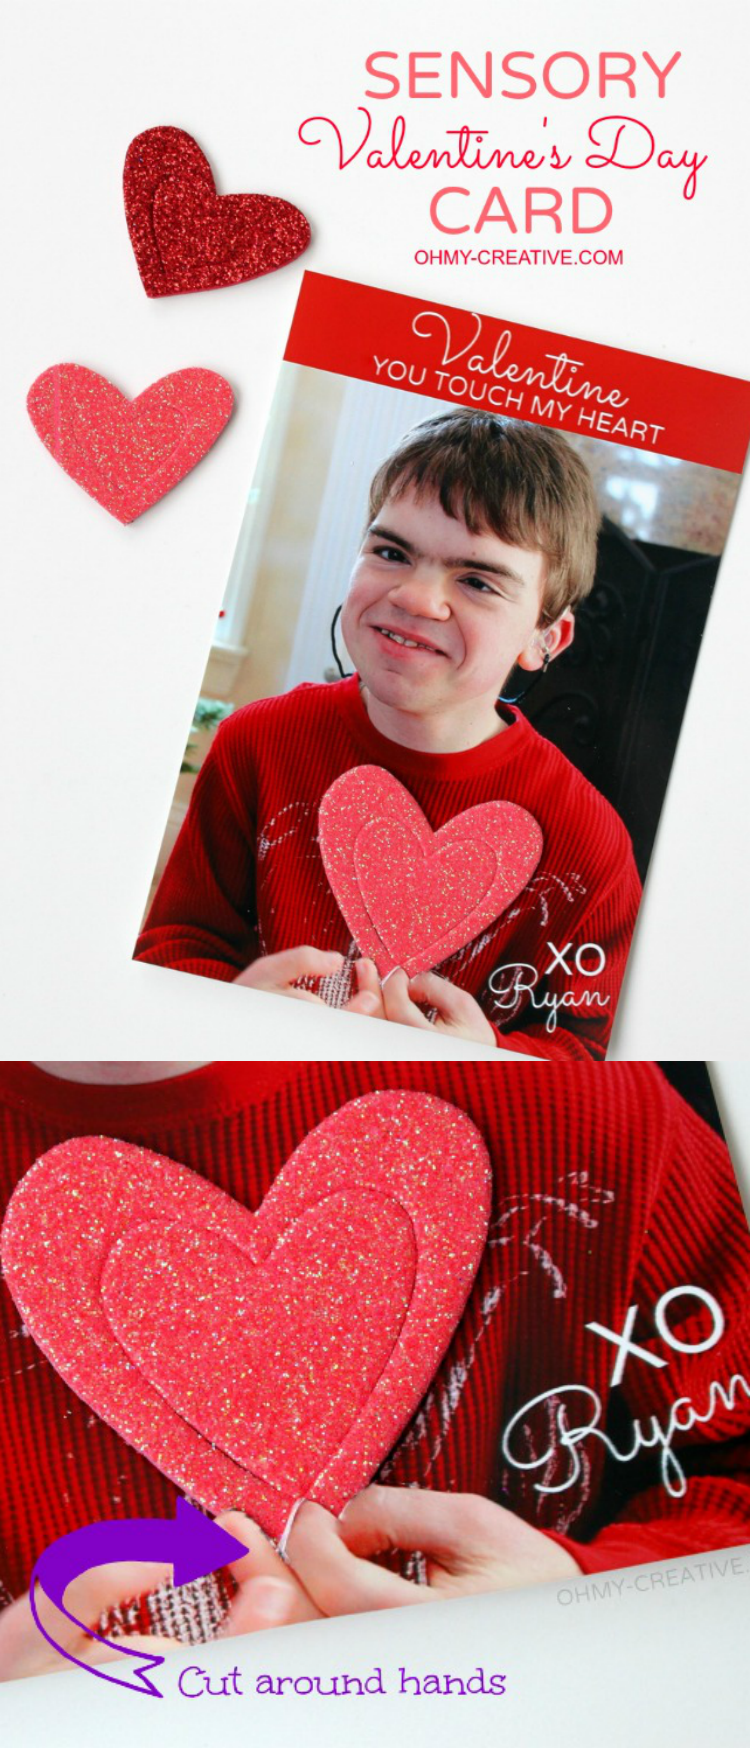 For the children who use touch to understand the world. Sensory Valentine's Day Card | OHMY-CREATIVE.COM